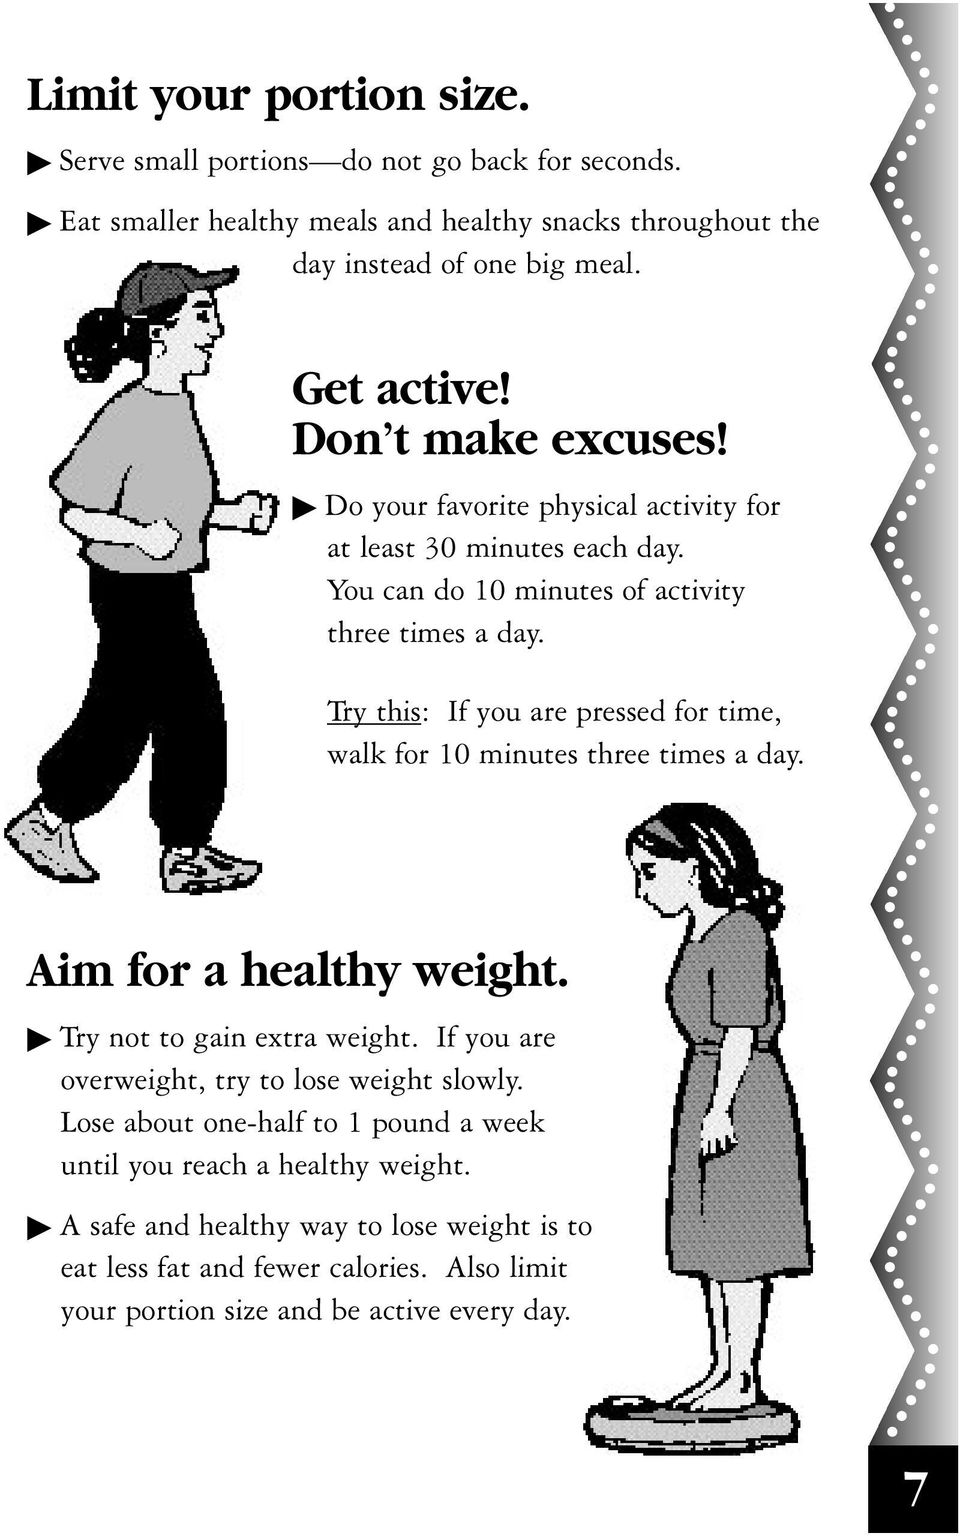 Try this: If you are pressed for time, walk for 10 minutes three times a day. Aim for a healthy weight. Try not to gain extra weight.